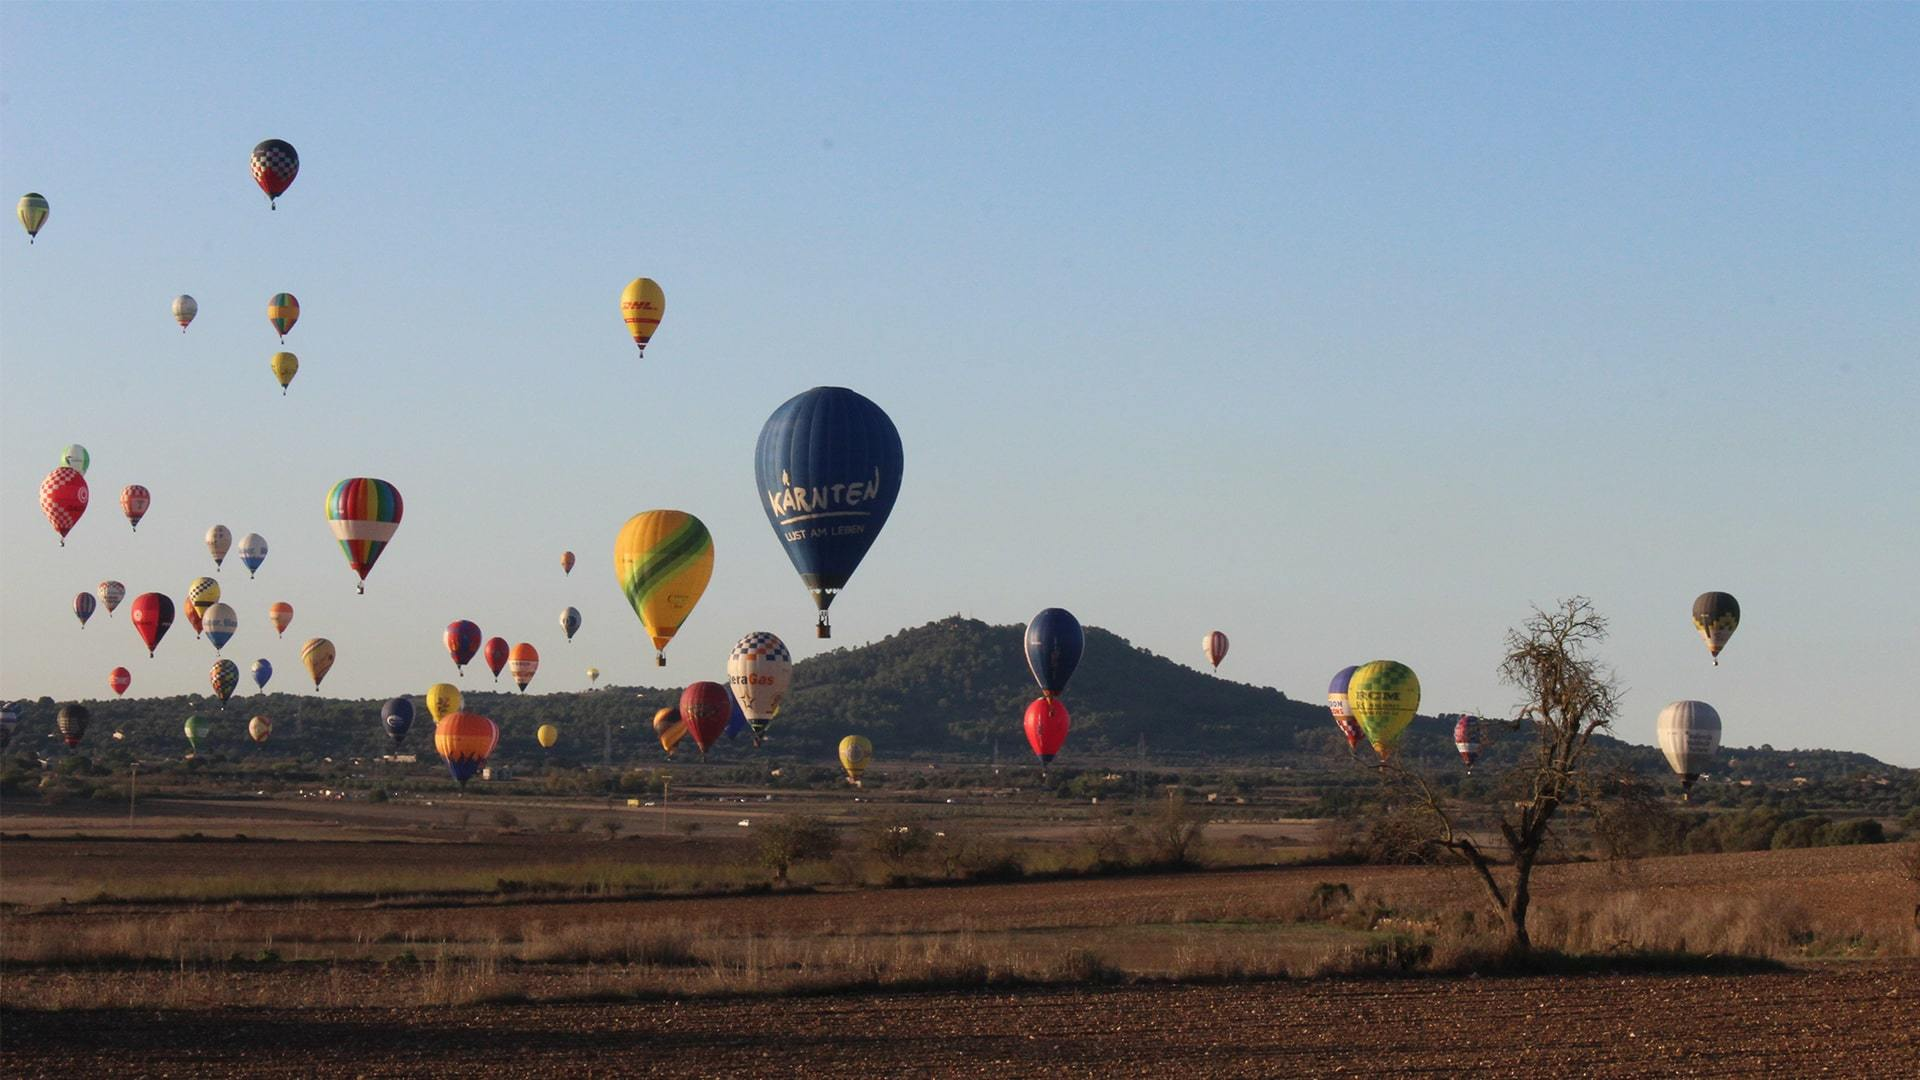 Hundred of hot air balloons flying countryside mallorca spectacular photo Adele Chretien min